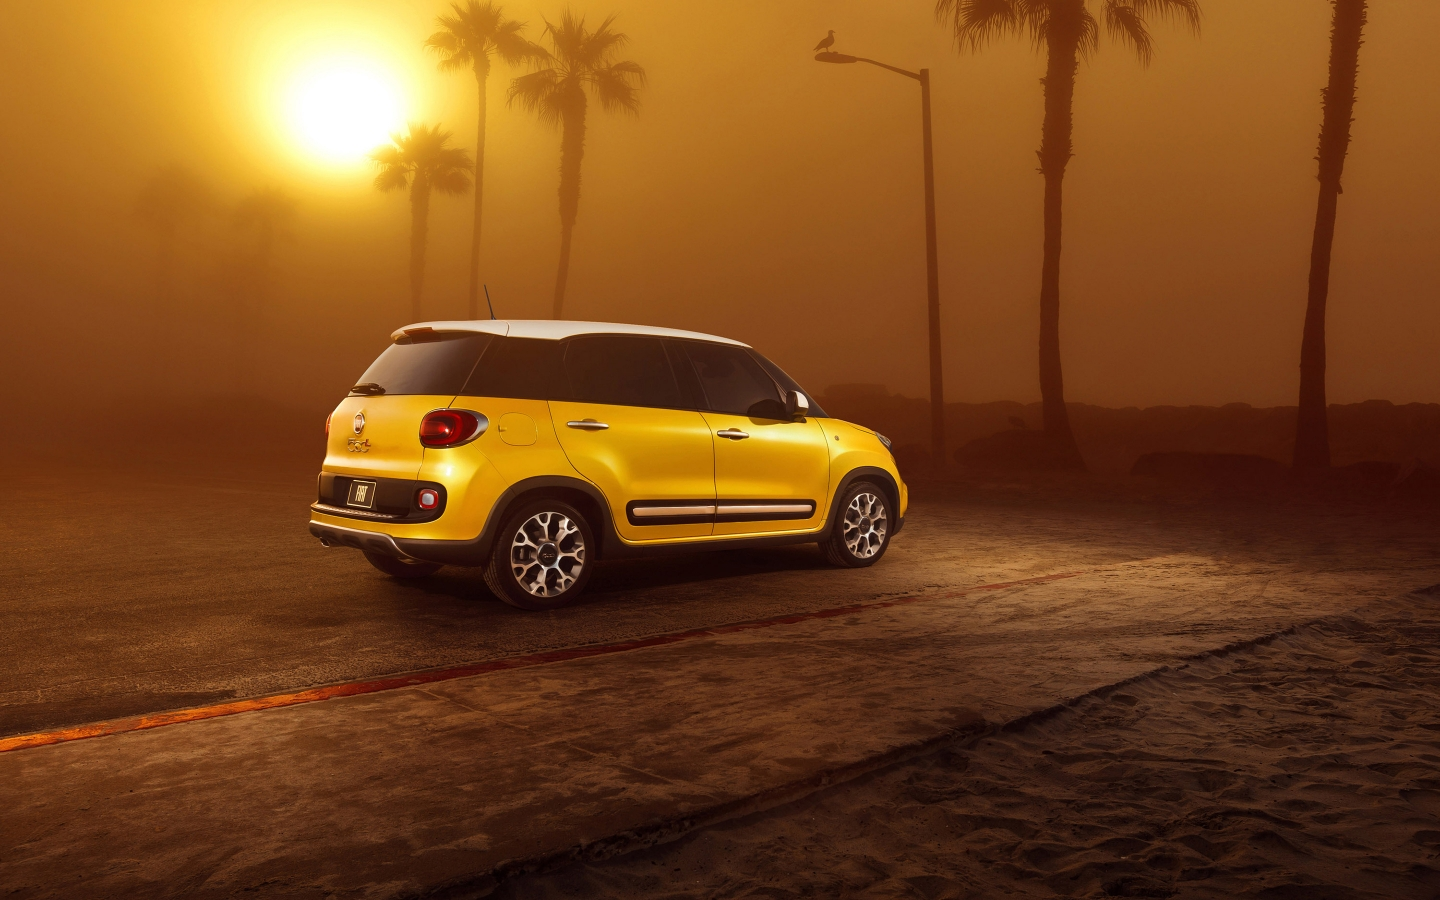 Sunset and Fiat 500L for 1440 x 900 widescreen resolution